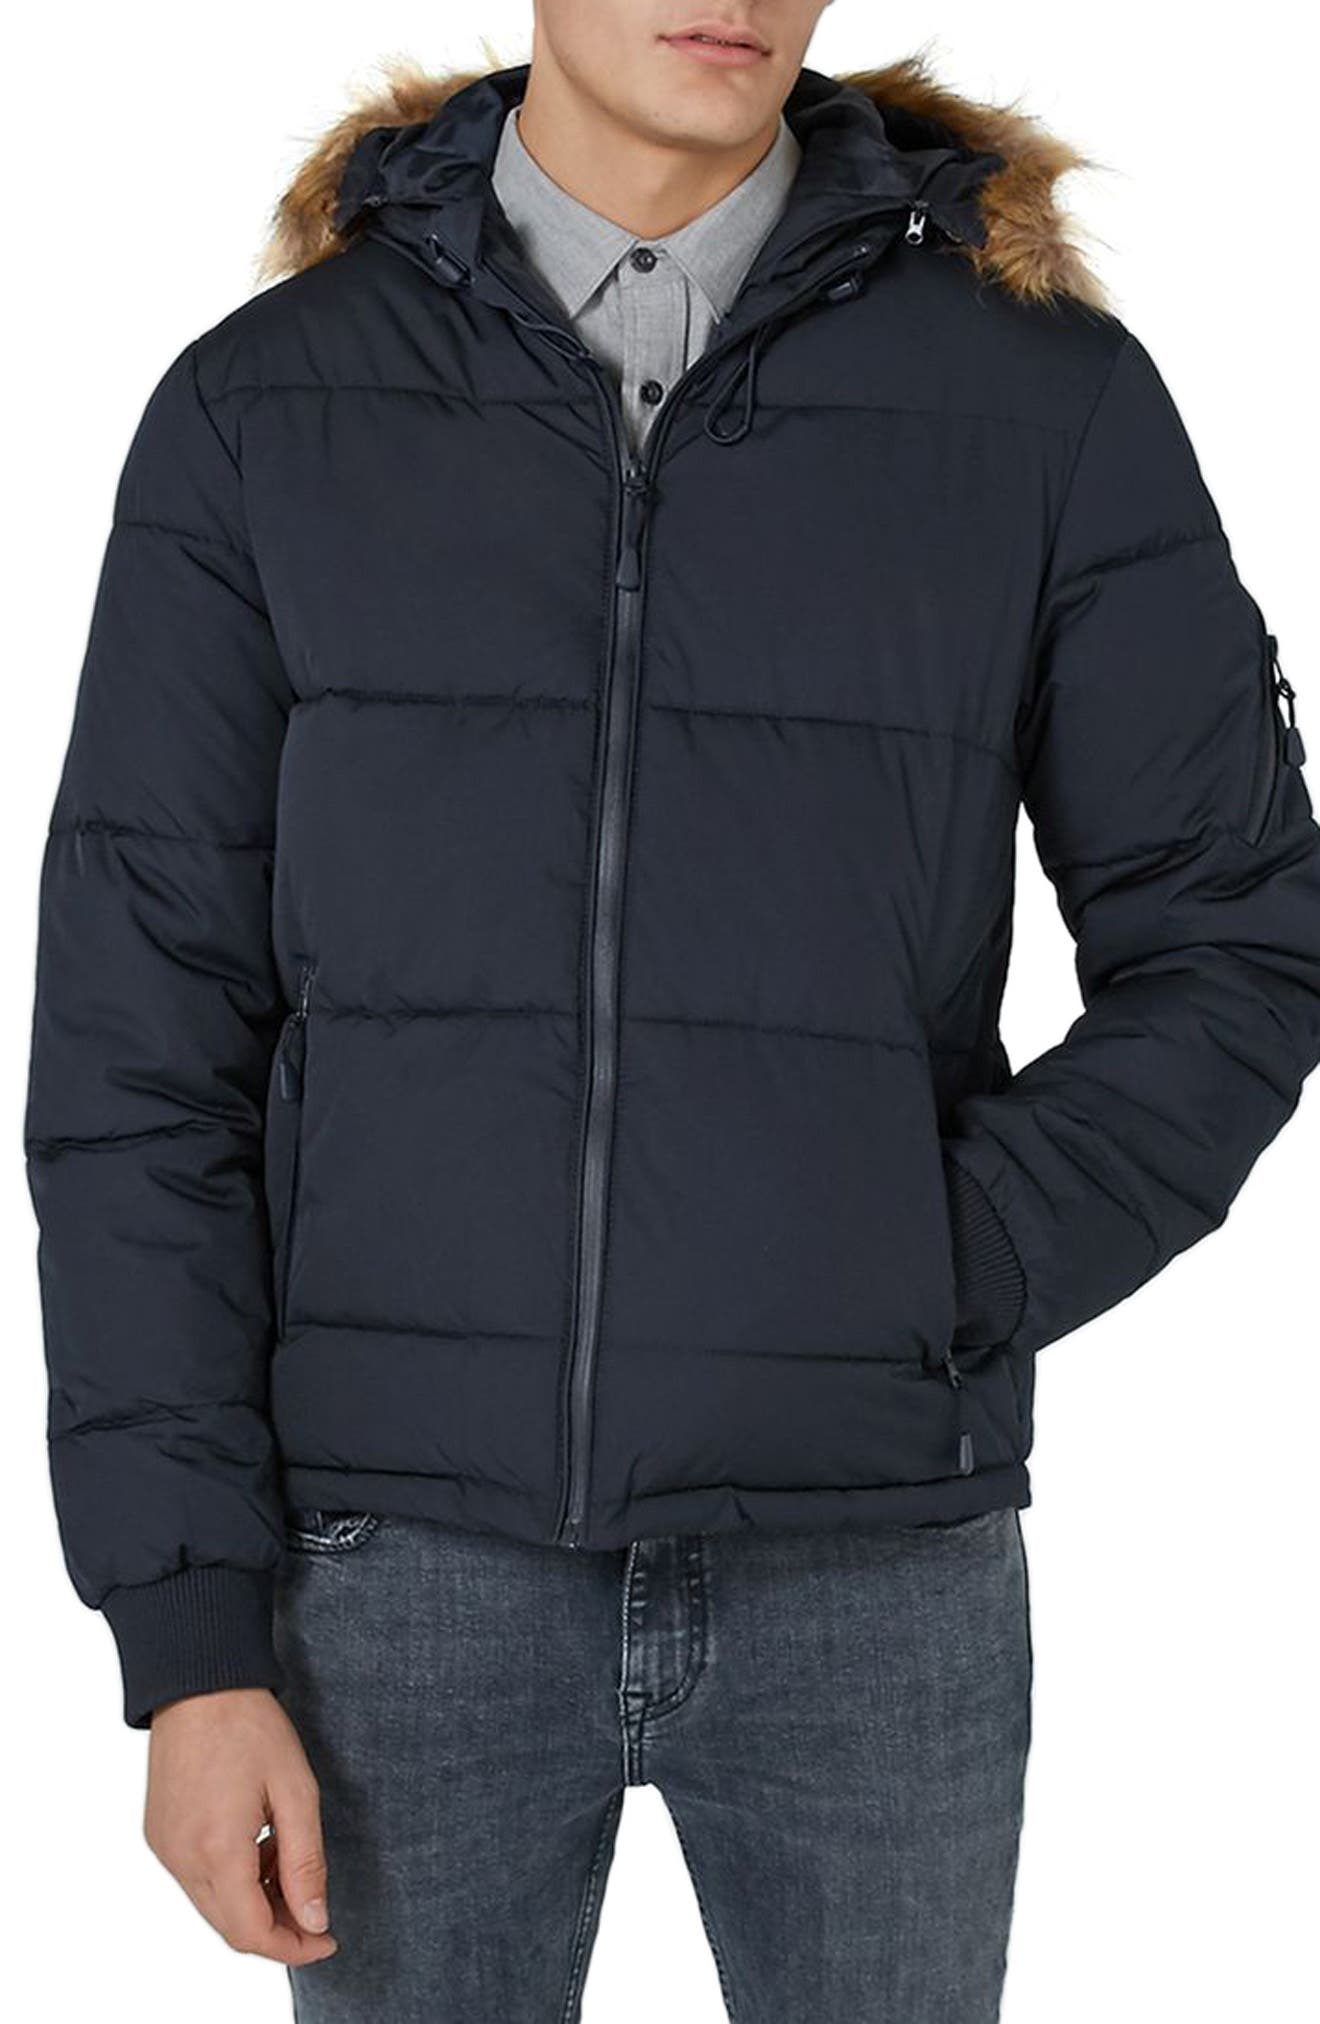 Topman Maguire Hooded Puffer Coat with Faux Fur Trim